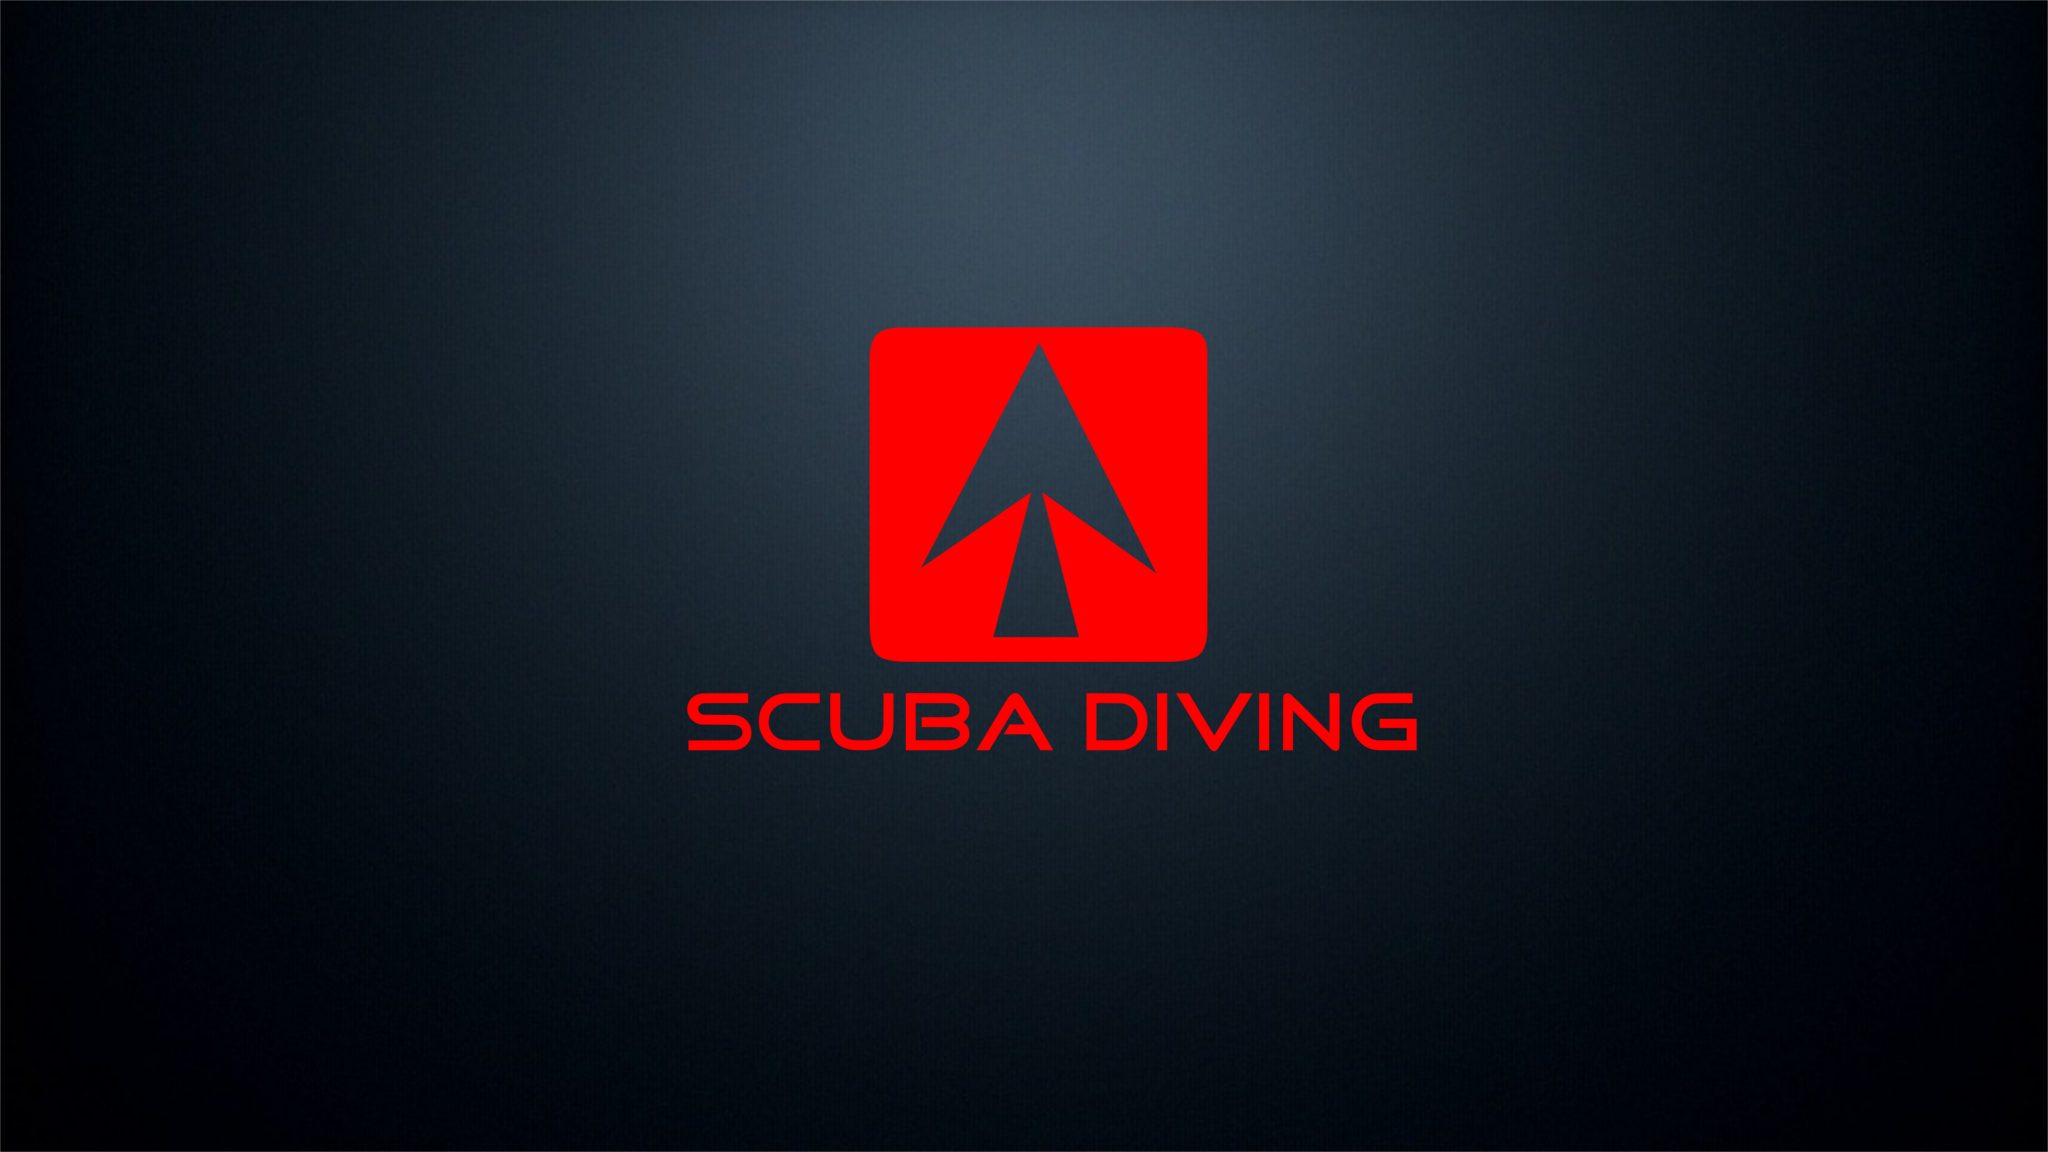 Scuba Diving Sticker